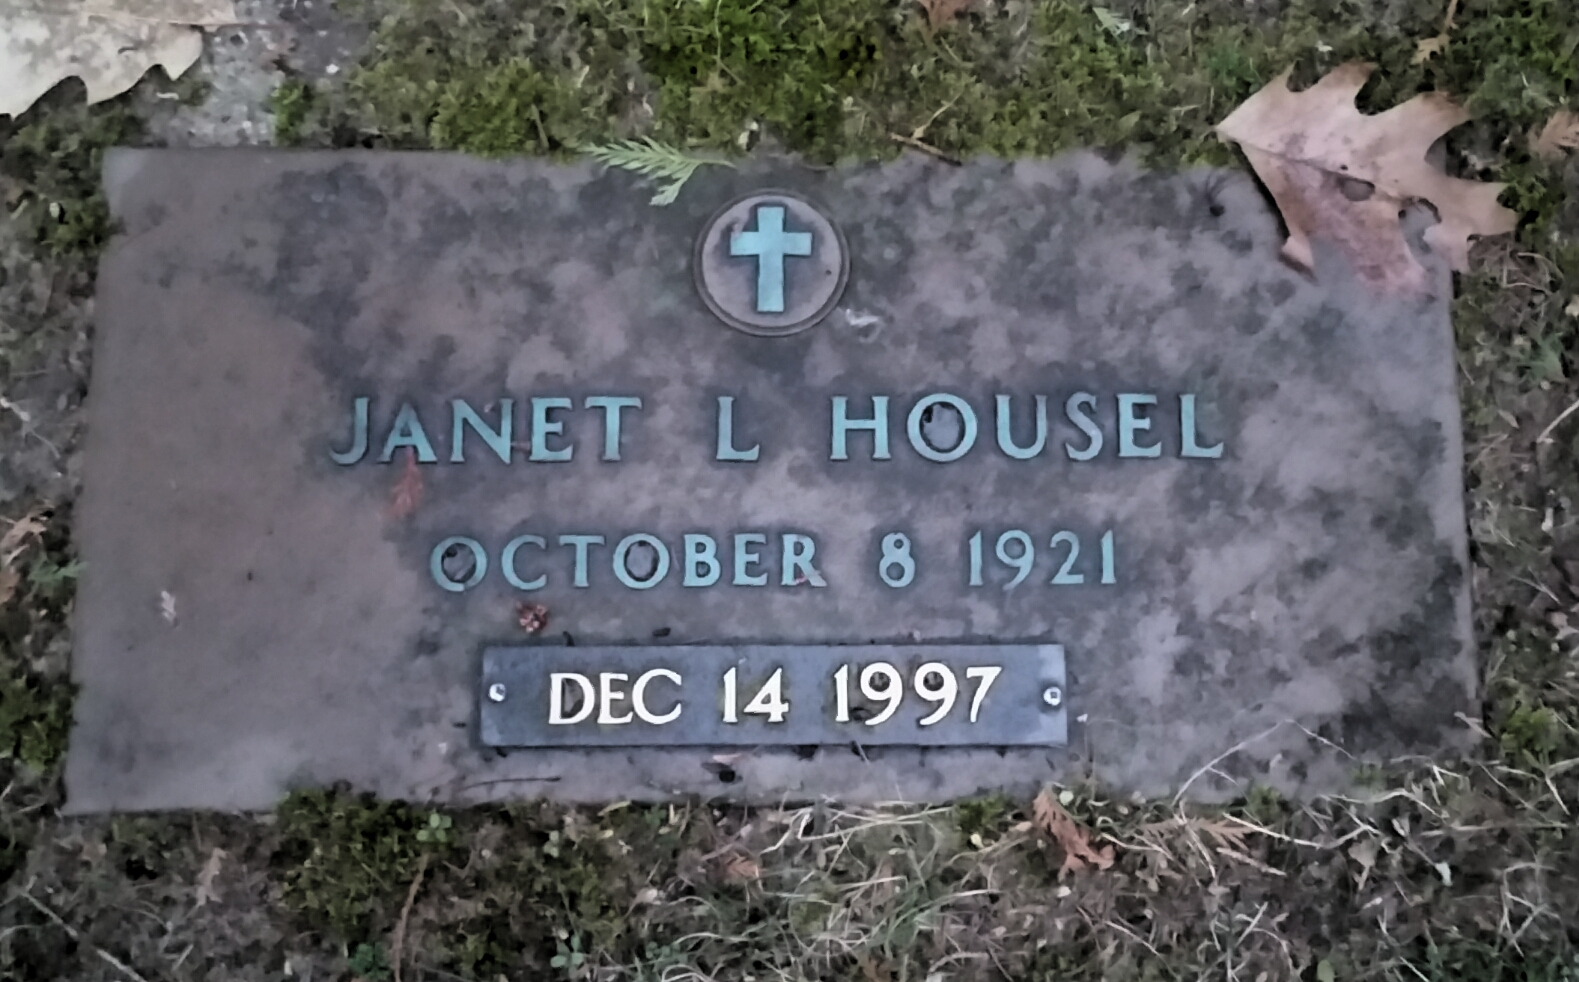 Janet Louise Housel